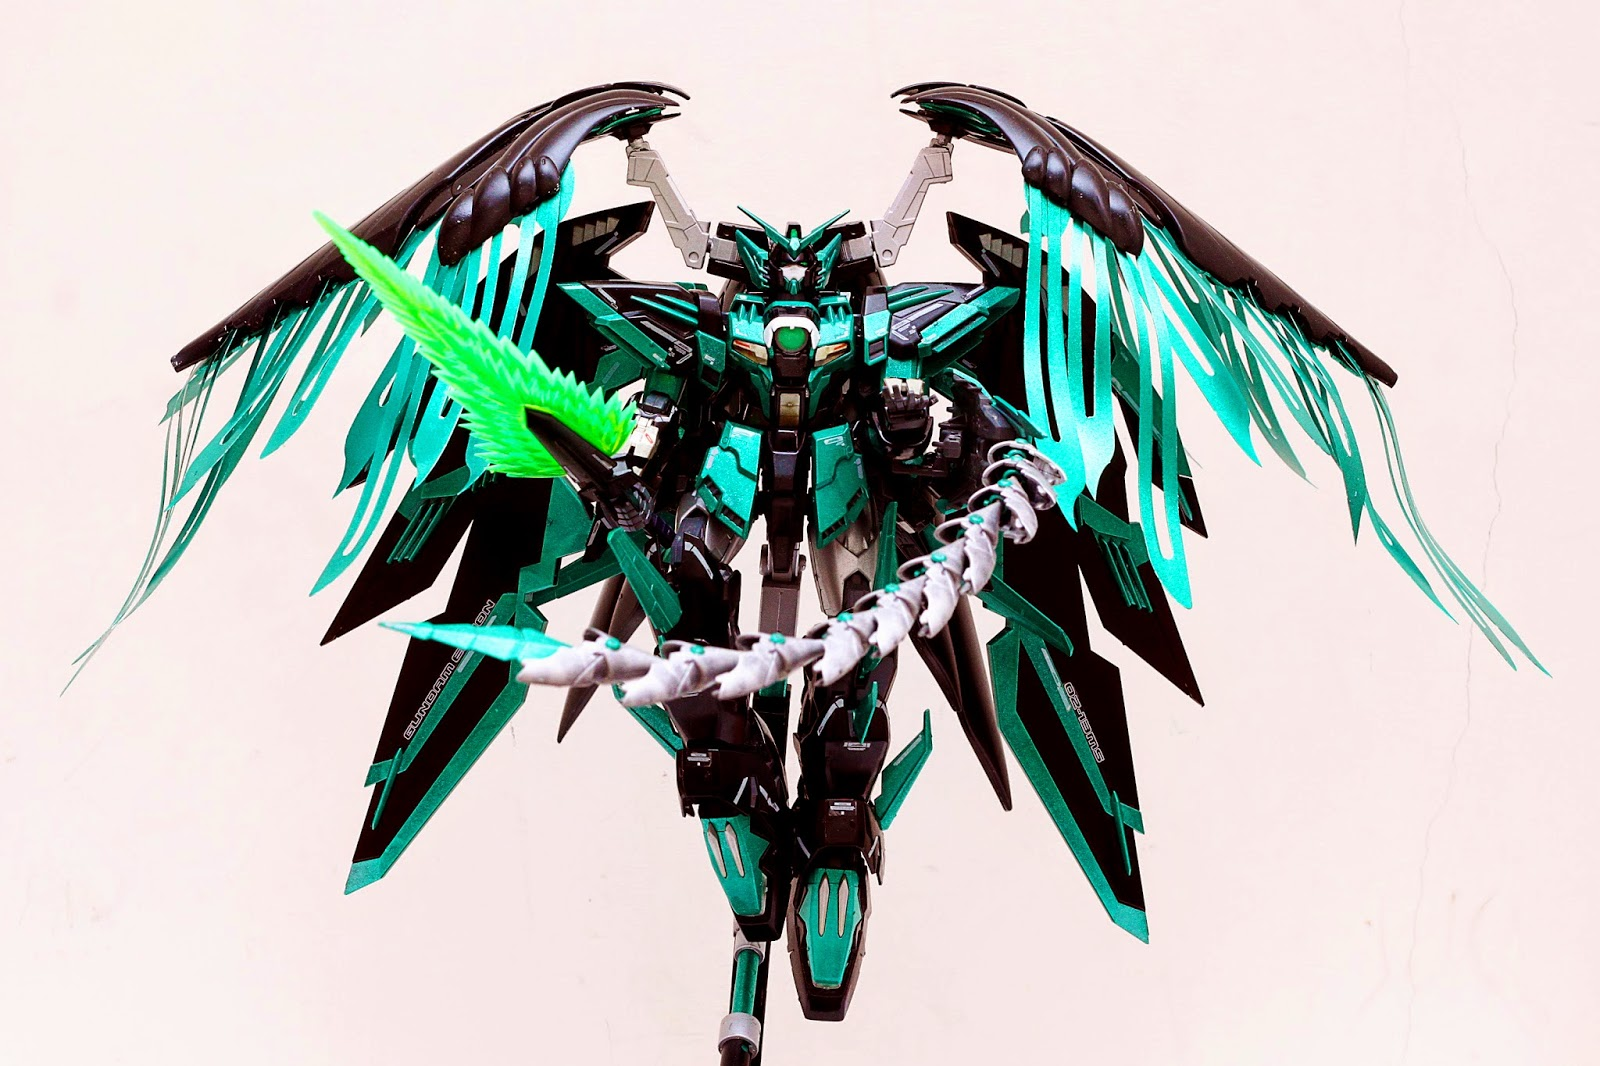 epyon gundam wing - photo #7